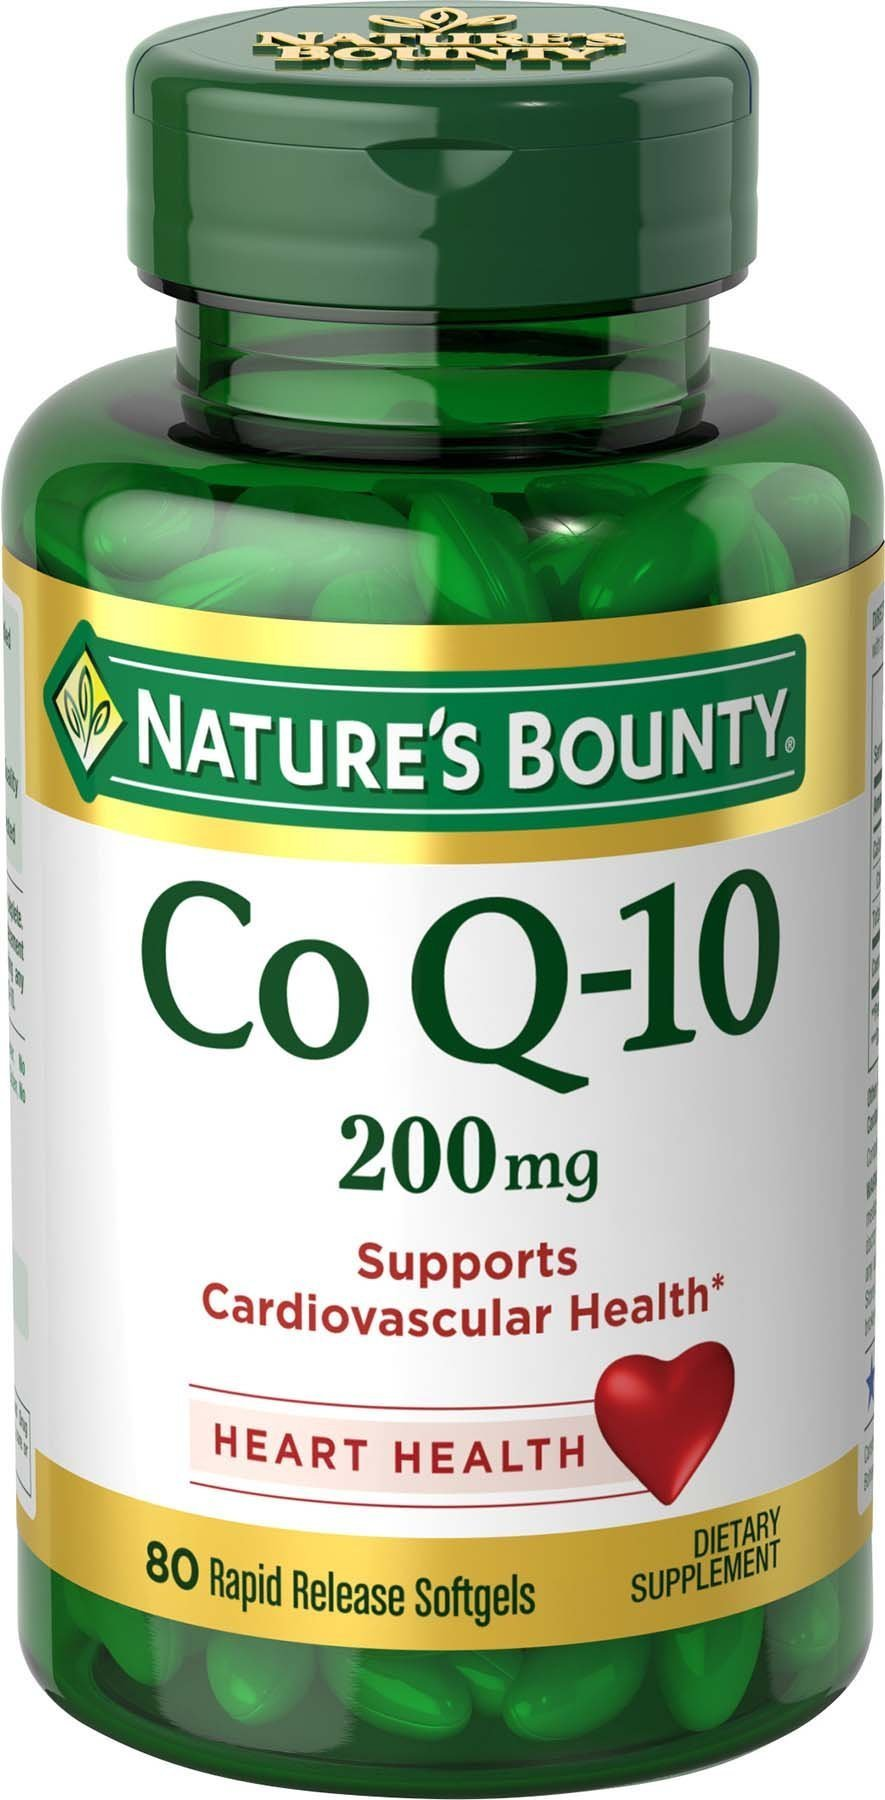 Nature's Bounty Co Q10 Pills and Dietary Supplement, Supports Cardiovascular and Heart Health, 200mg, 80 Softgels